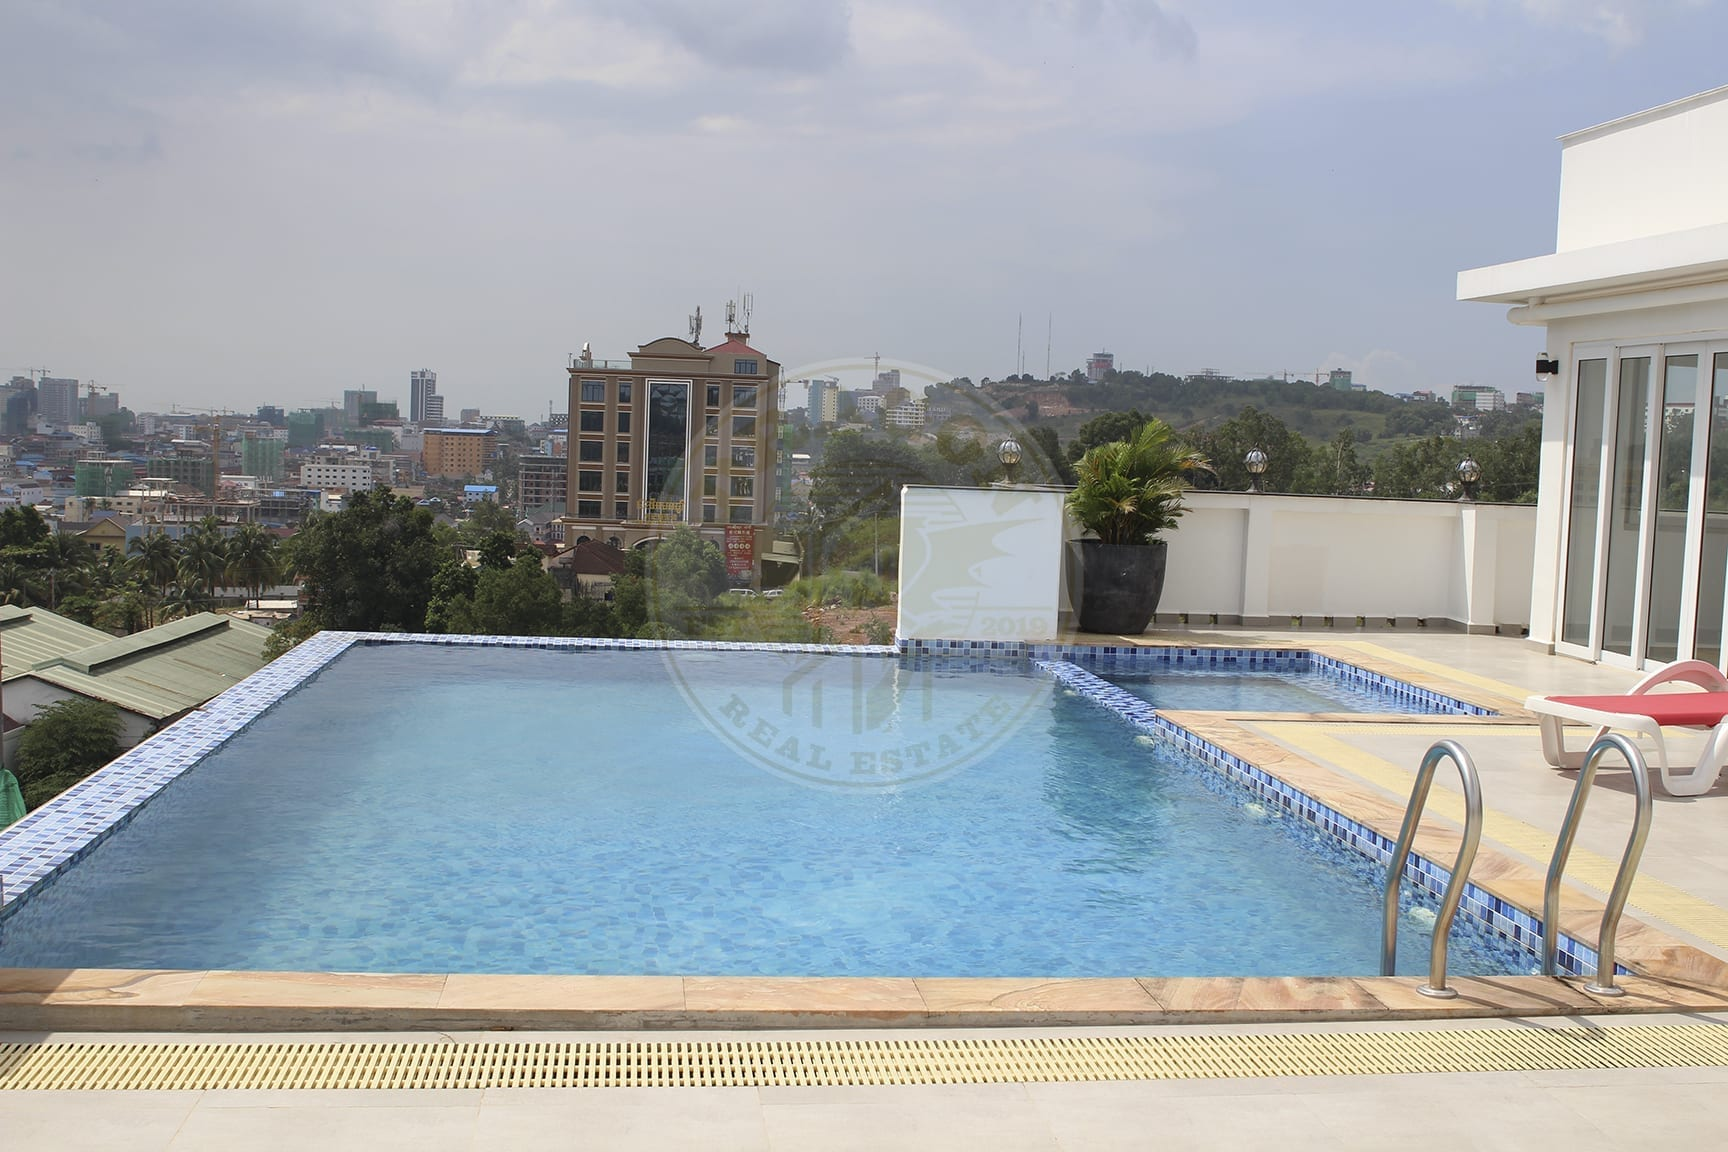 Unique and very Upscale Apartment in Sihanoukville.Dragon Real Estate